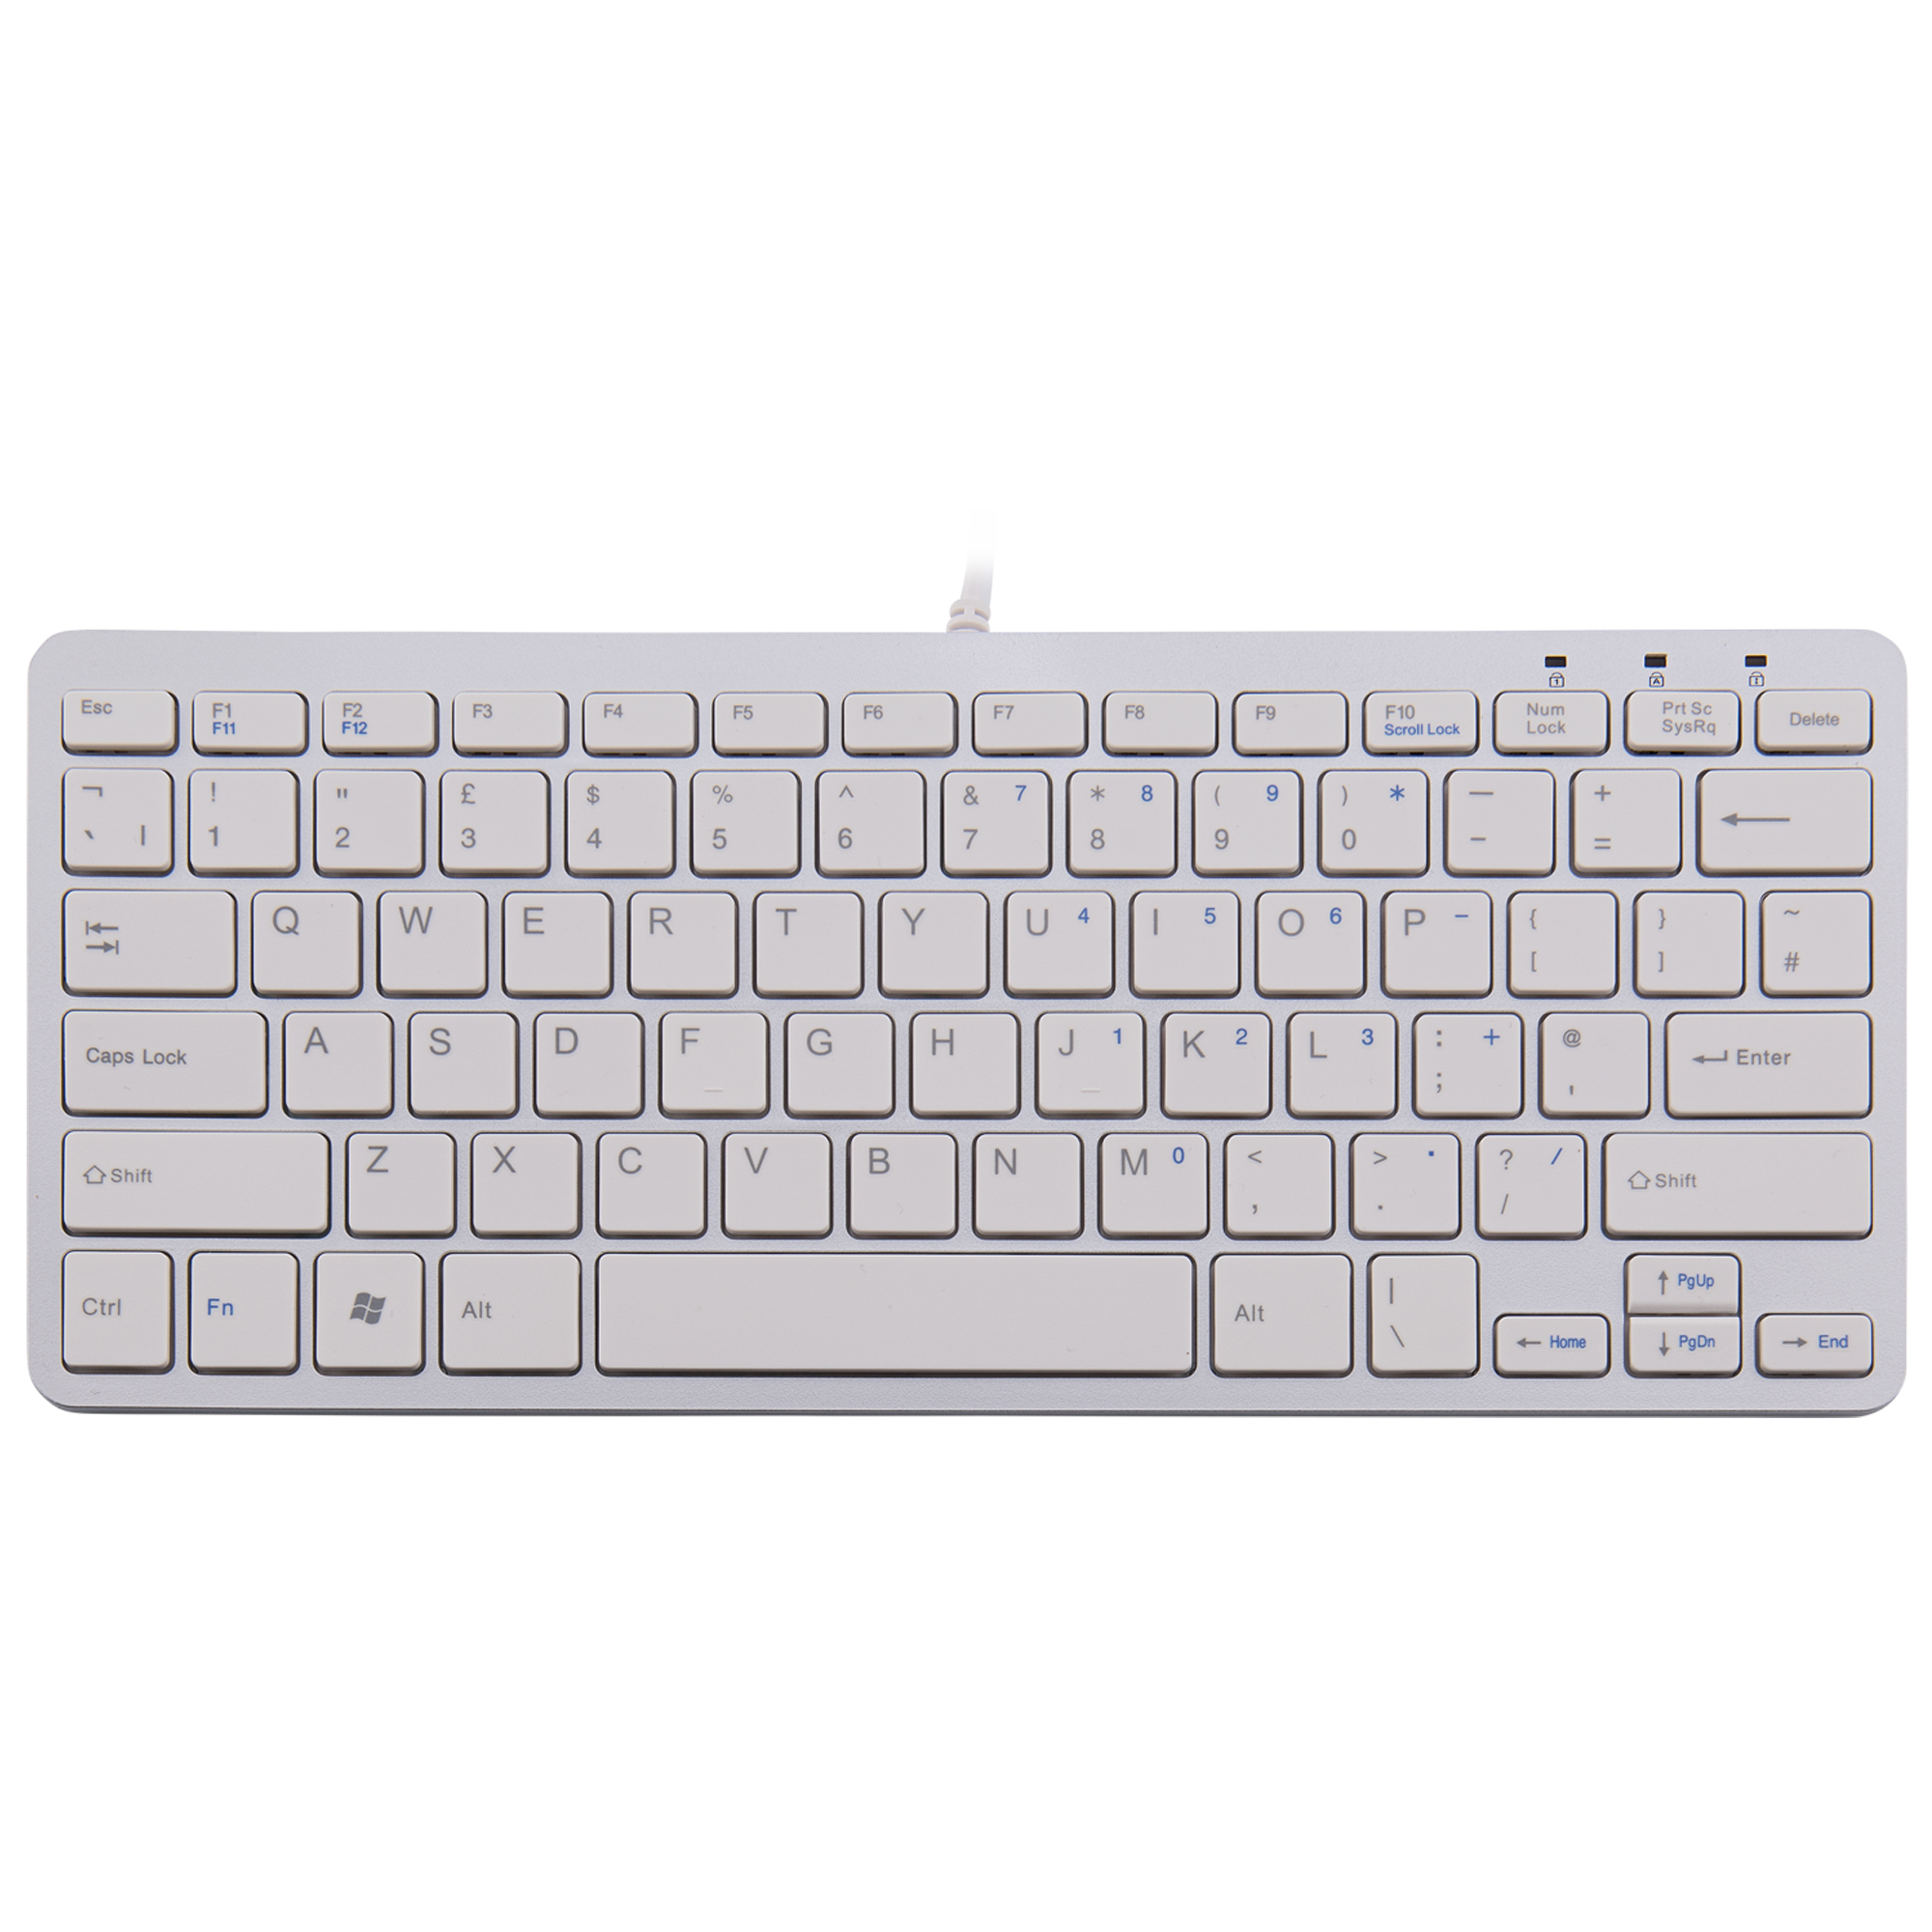 R-Go Compact Keyboard, QWERTY (UK), white, wired